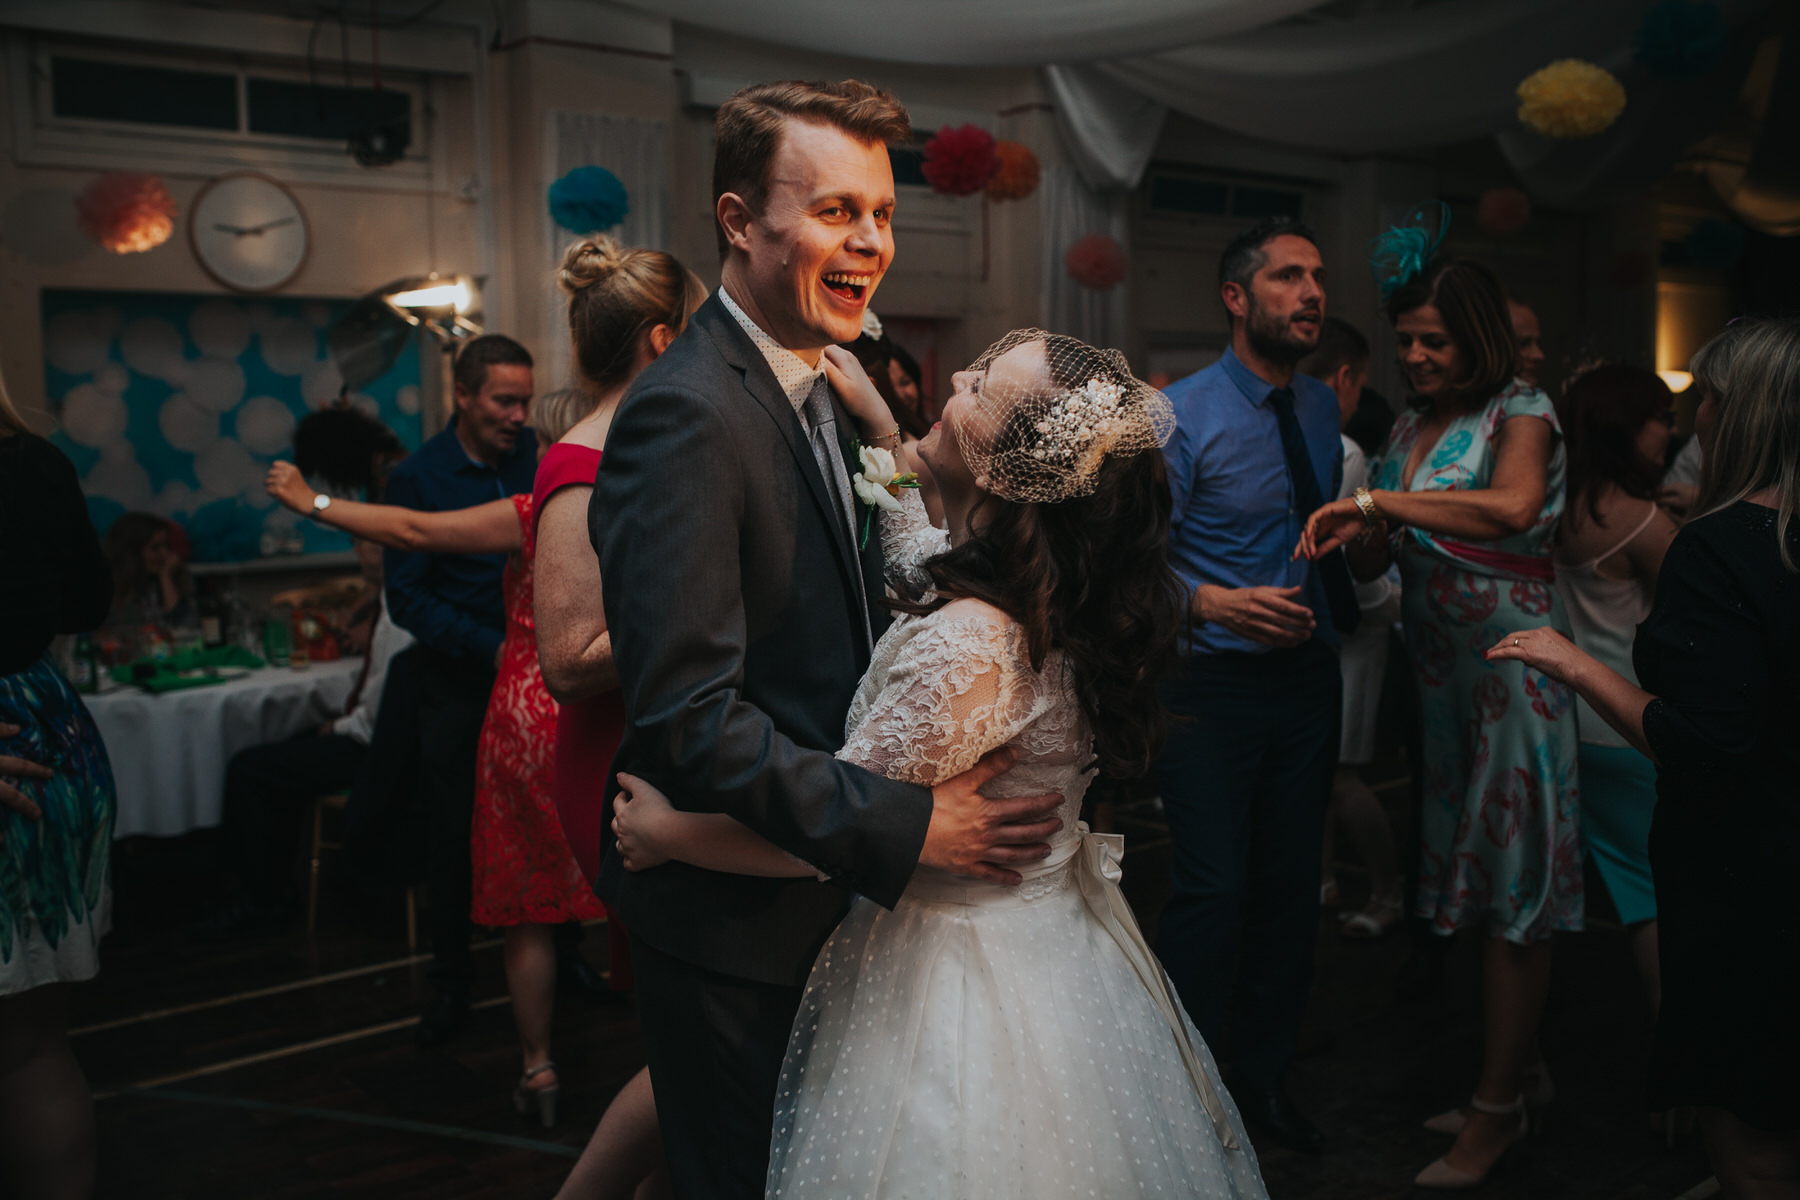 262 first dance school hall wedding reception London.jpg